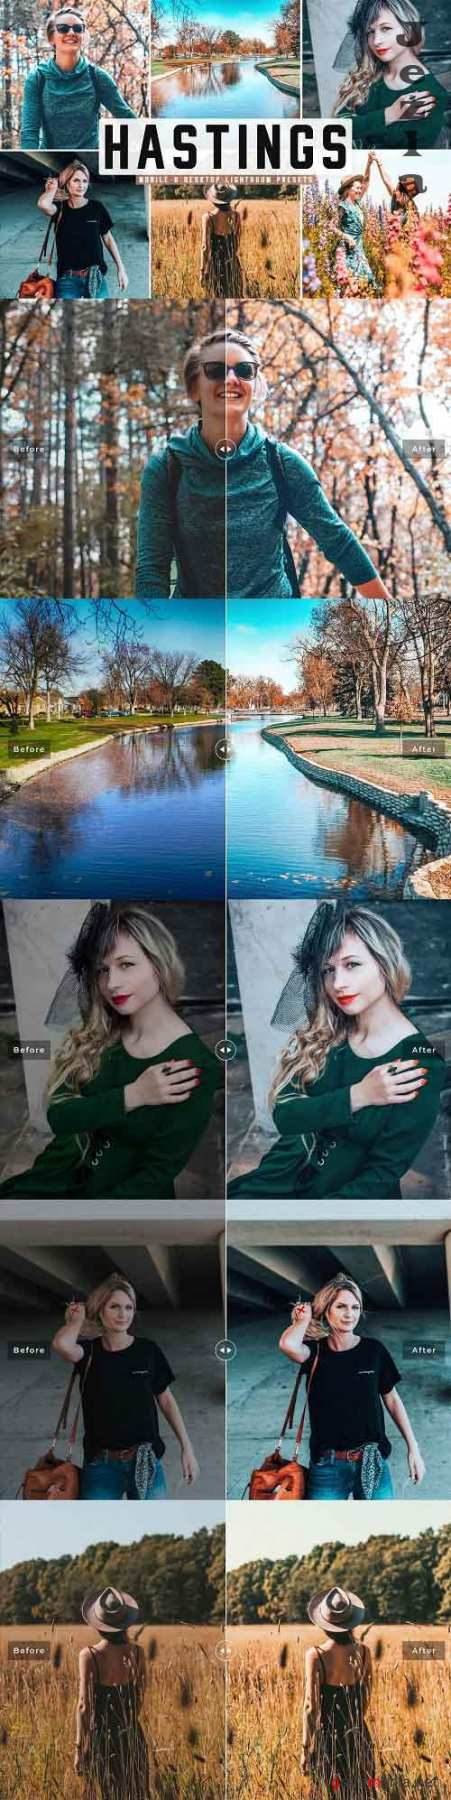 Hastings Lightroom Presets Pack - 5038530 - Mobile & Desktop